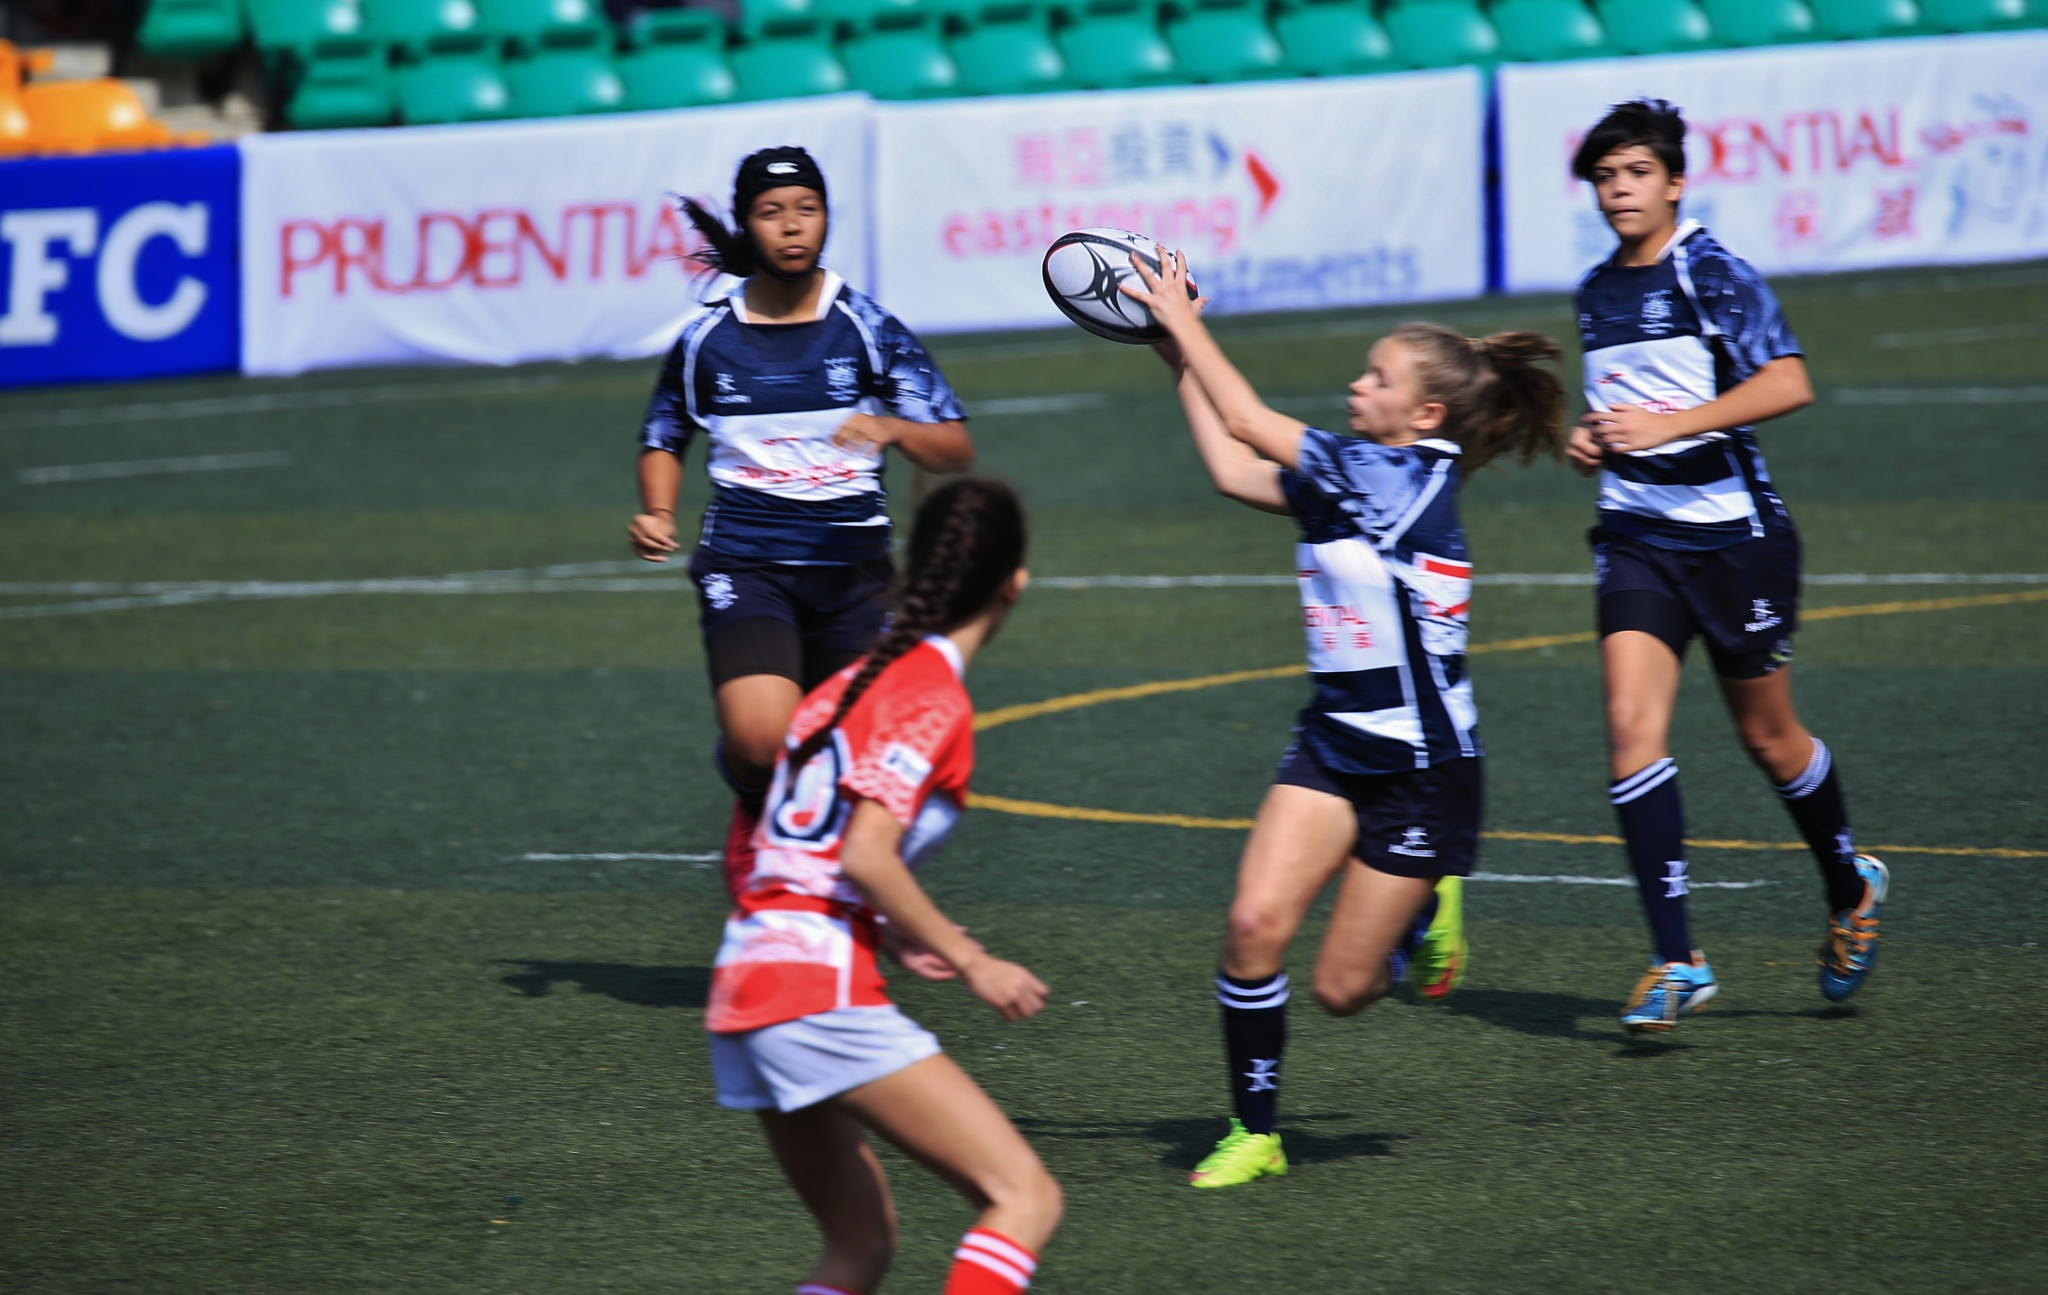 2016 Girl's Rugby tournament in Hong Kong. Jan.,1,2016. by samip75